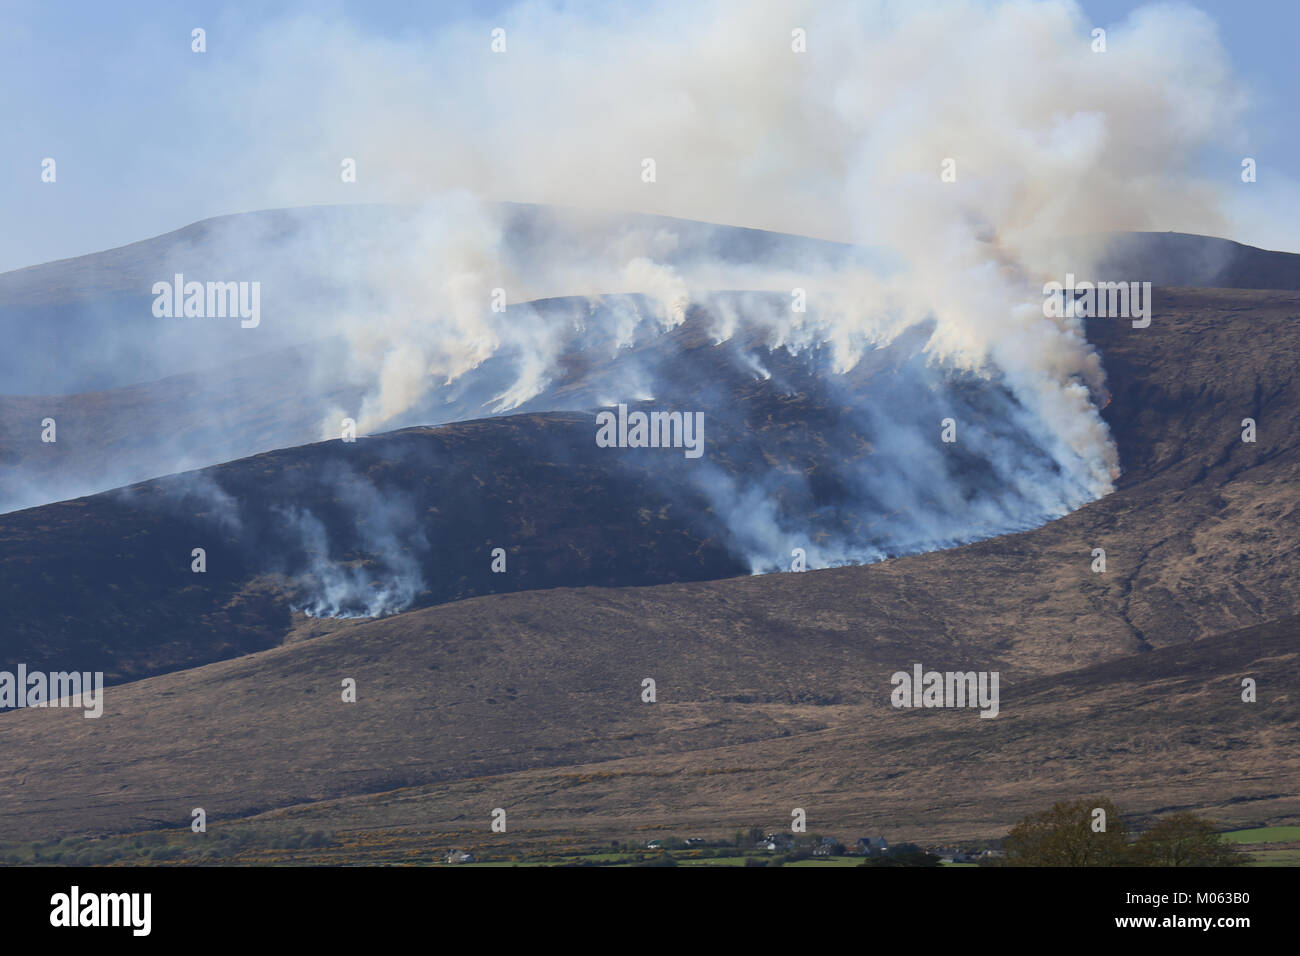 large mountainside fire raging and being helped by the wind, county kerry, ireland - Stock Image